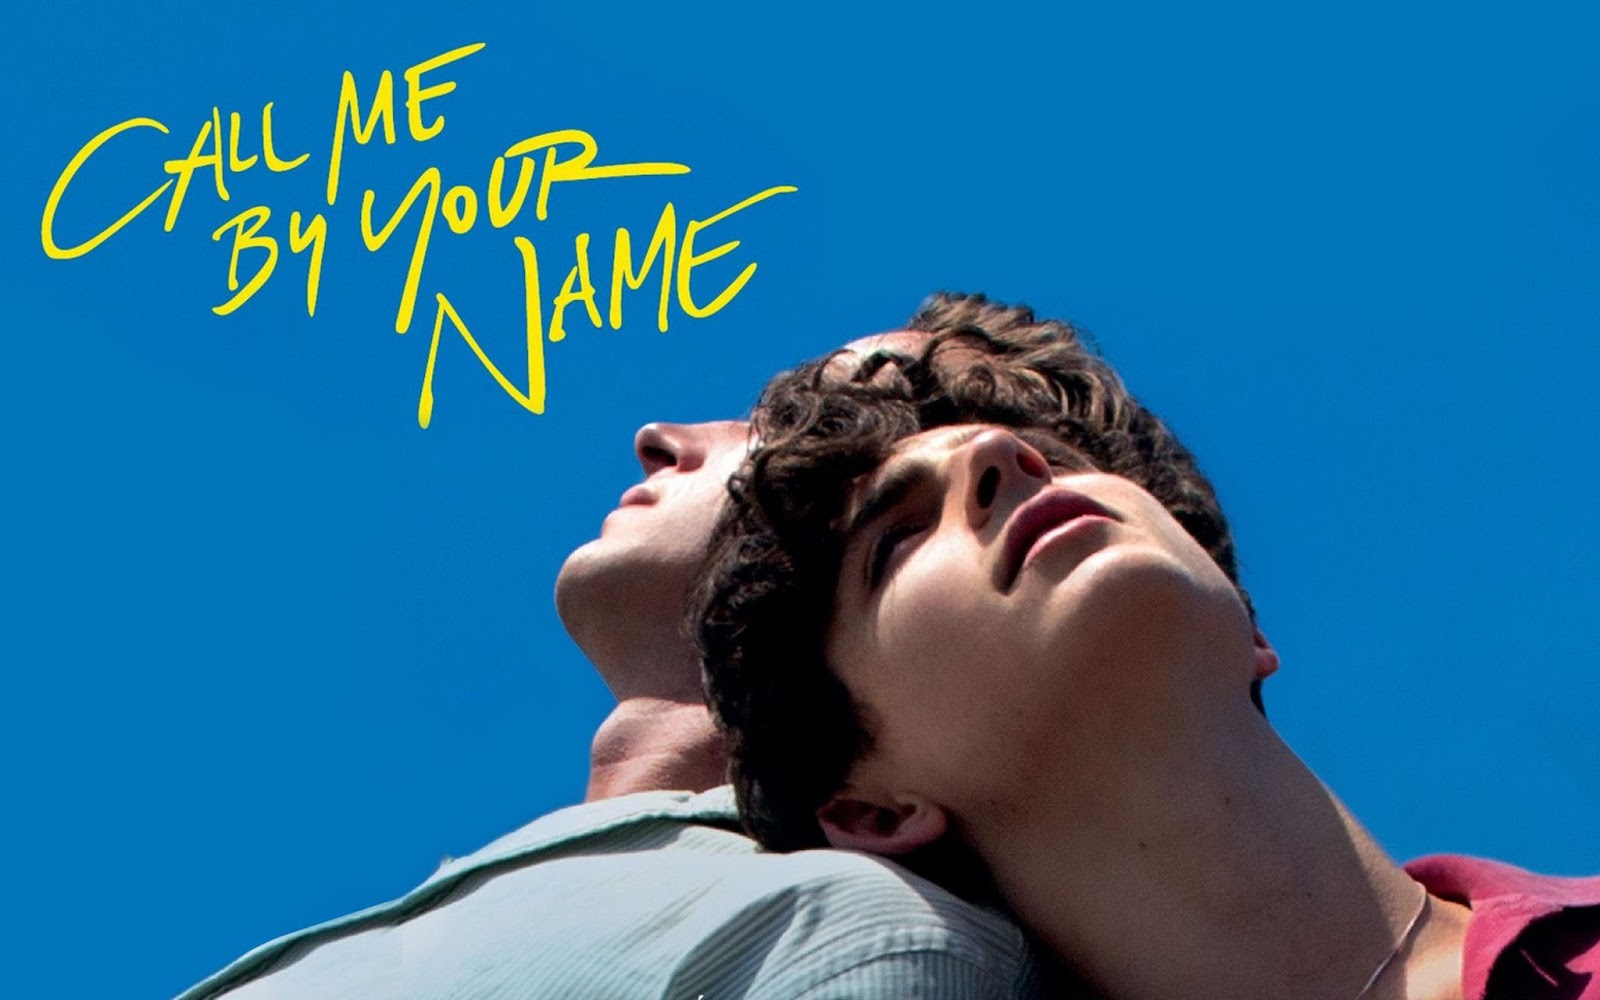 Call Me BY Your Name, a Luca Guadagnino film